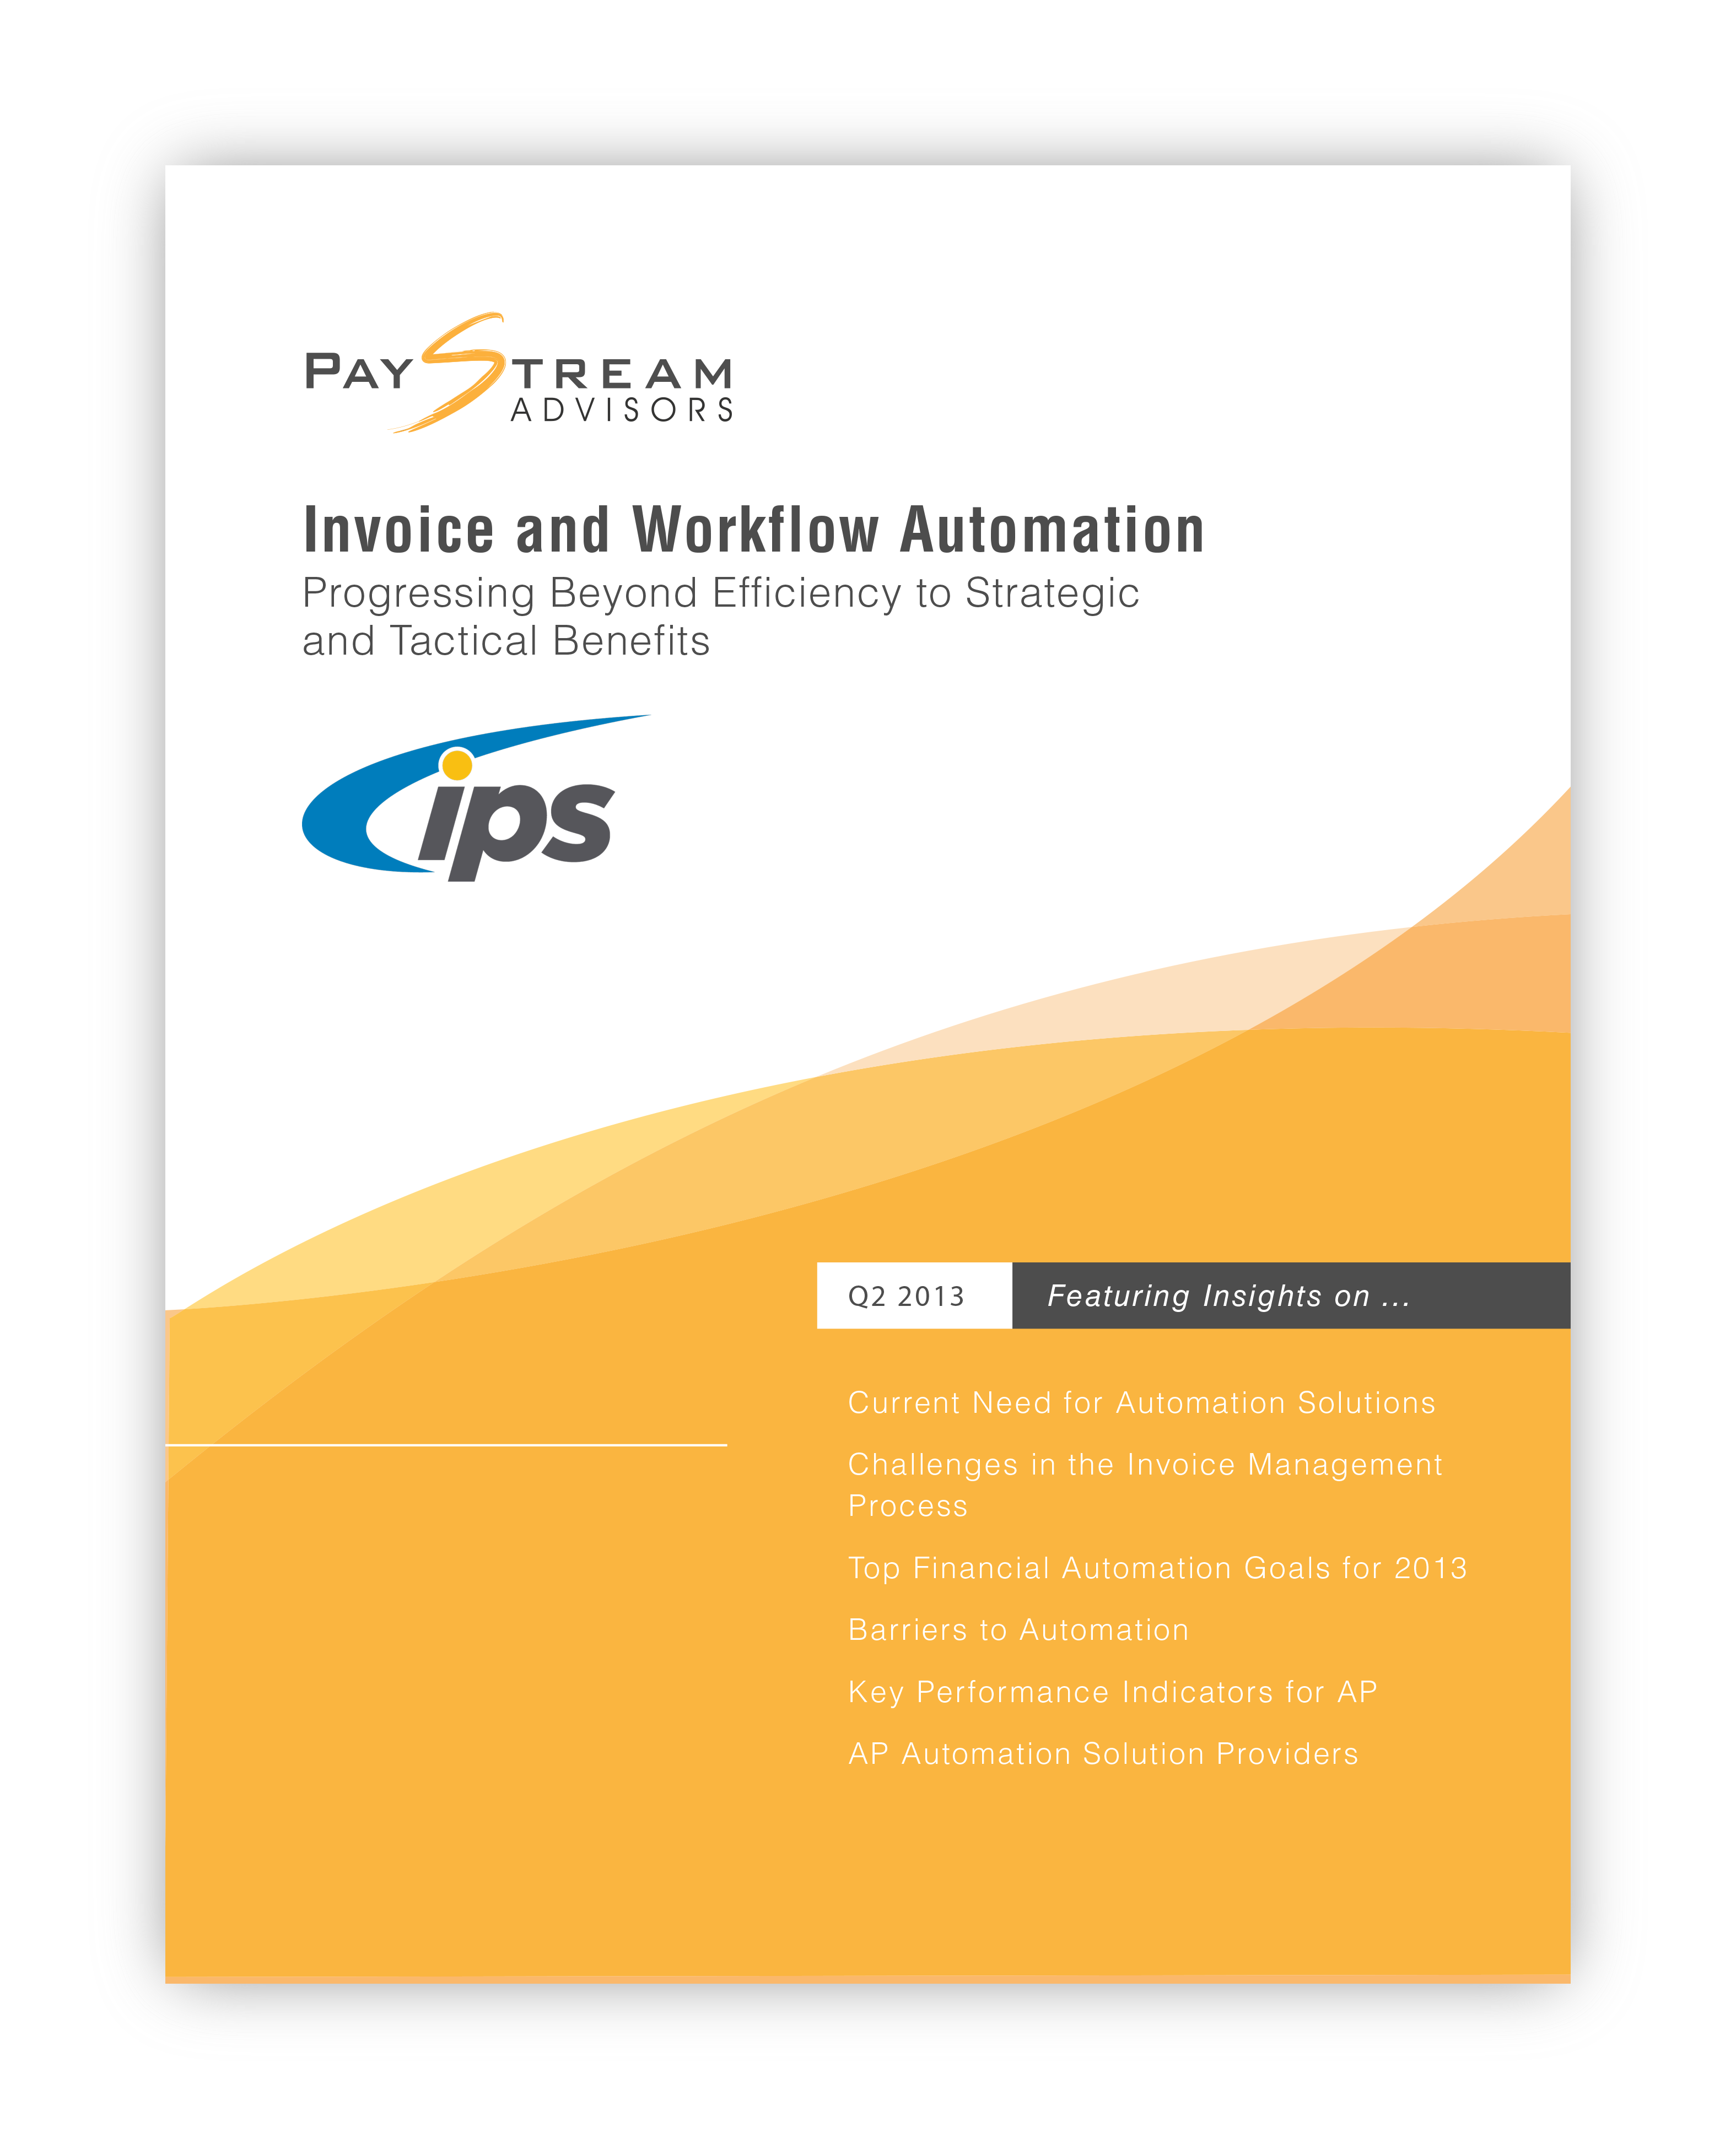 Paystream_Advisors_Report_IPS-cover v2.png